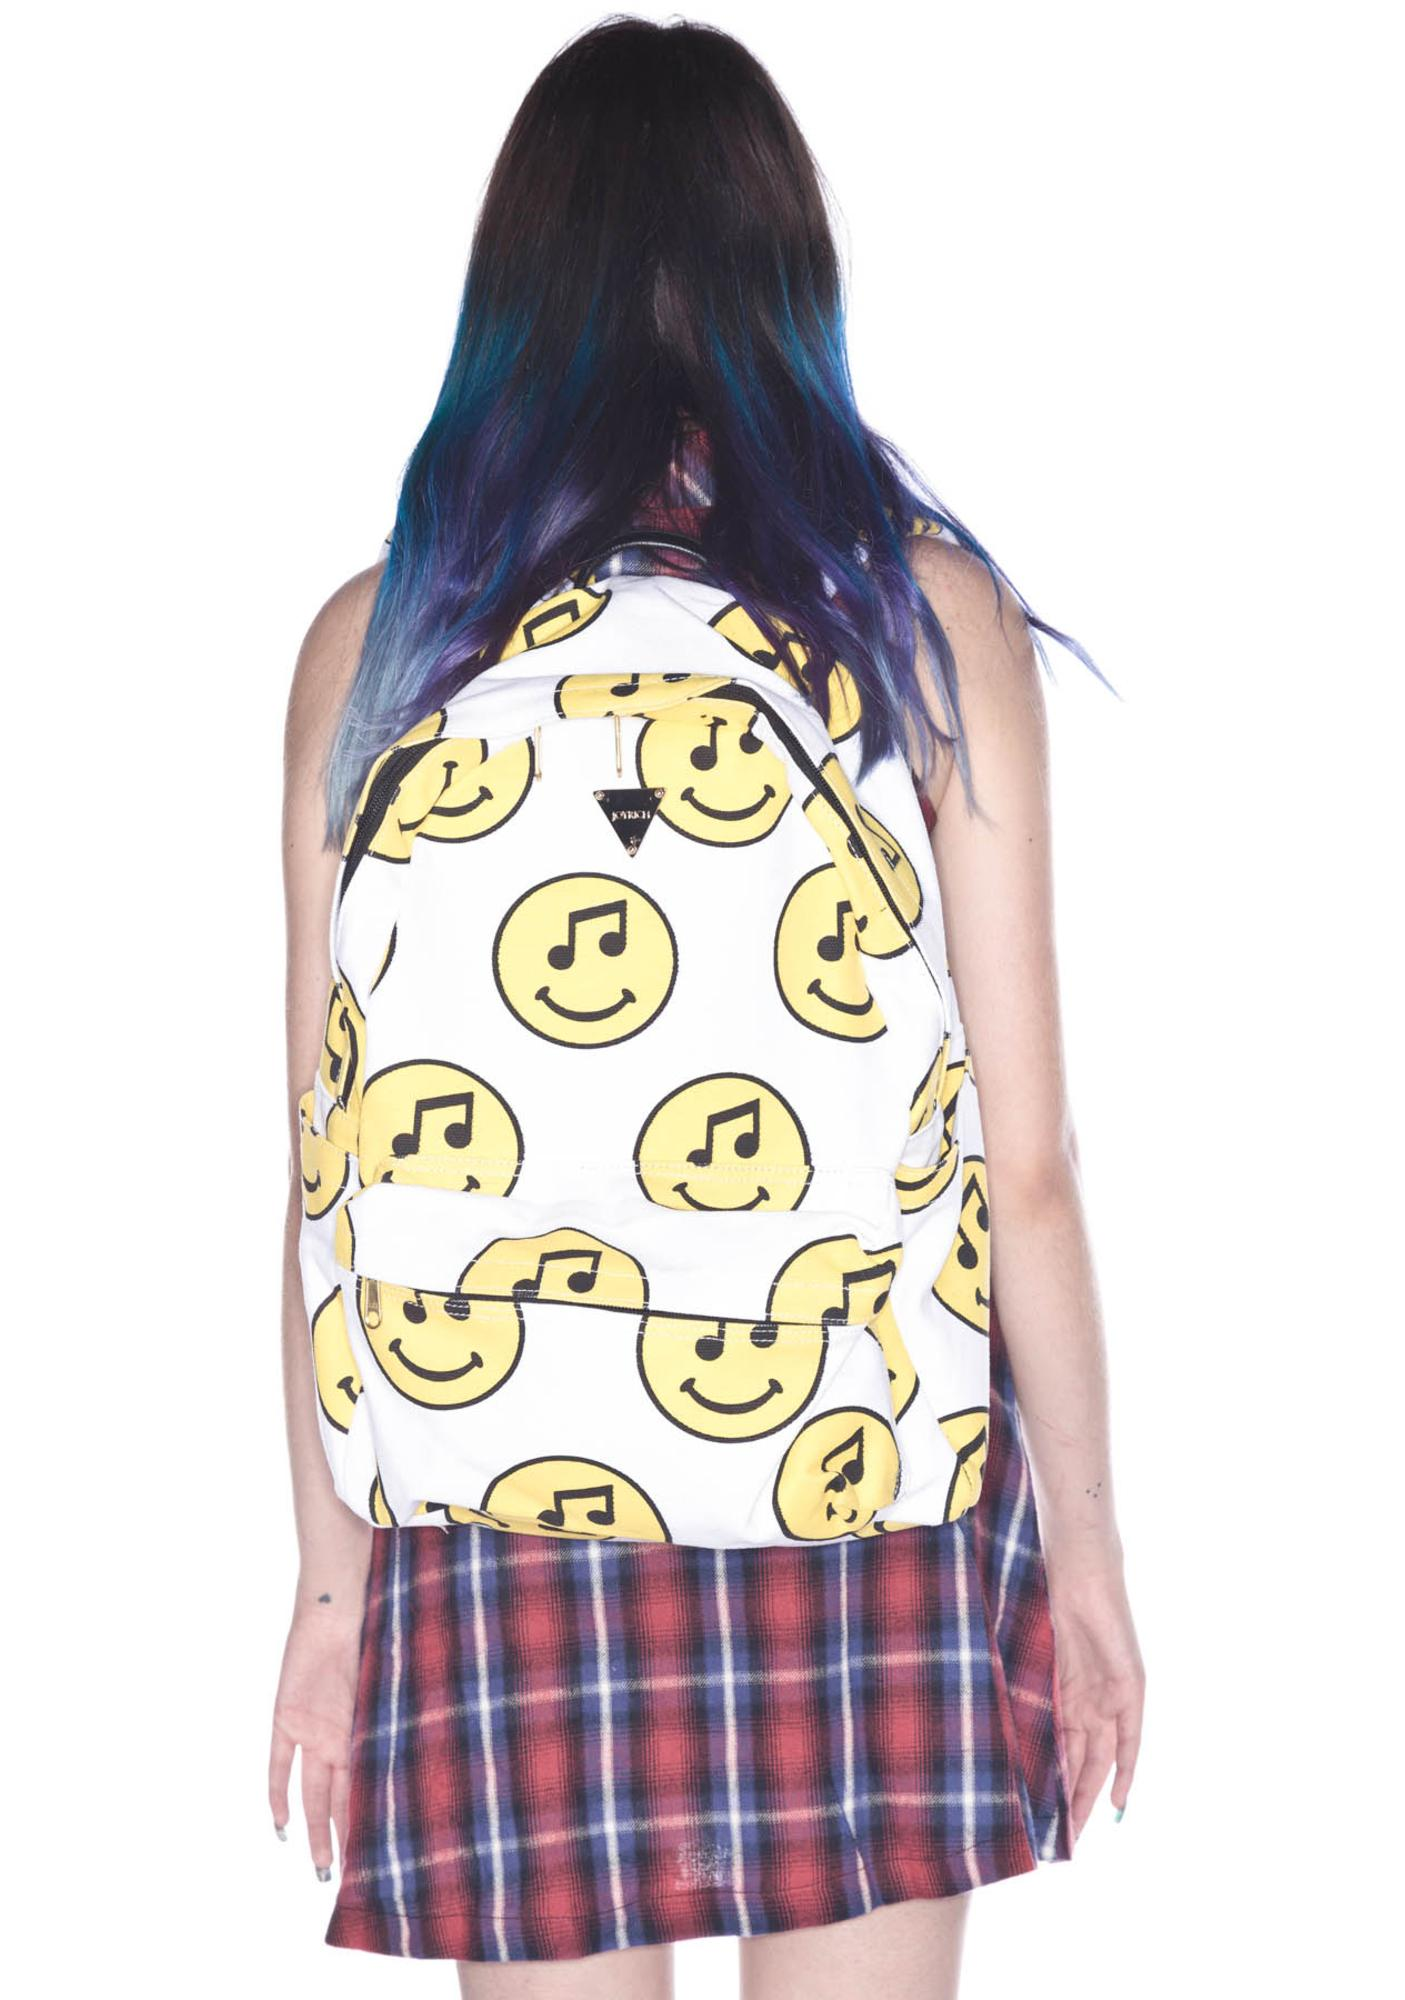 Joyrich Music Face Backpack